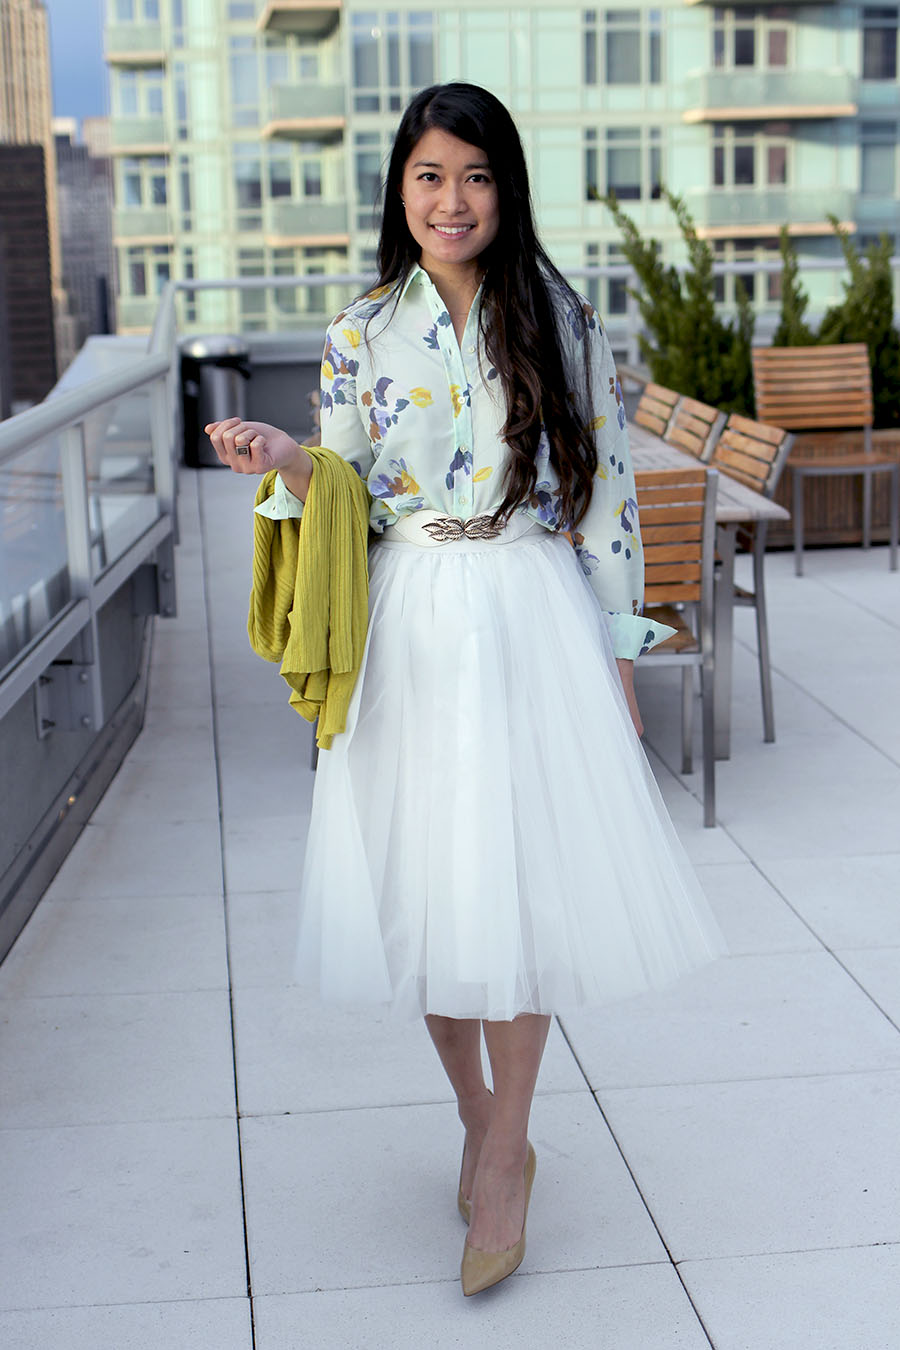 Bright whites, soft pastels, floral print, and flowing tulle makes for a perfect Easter outfit.